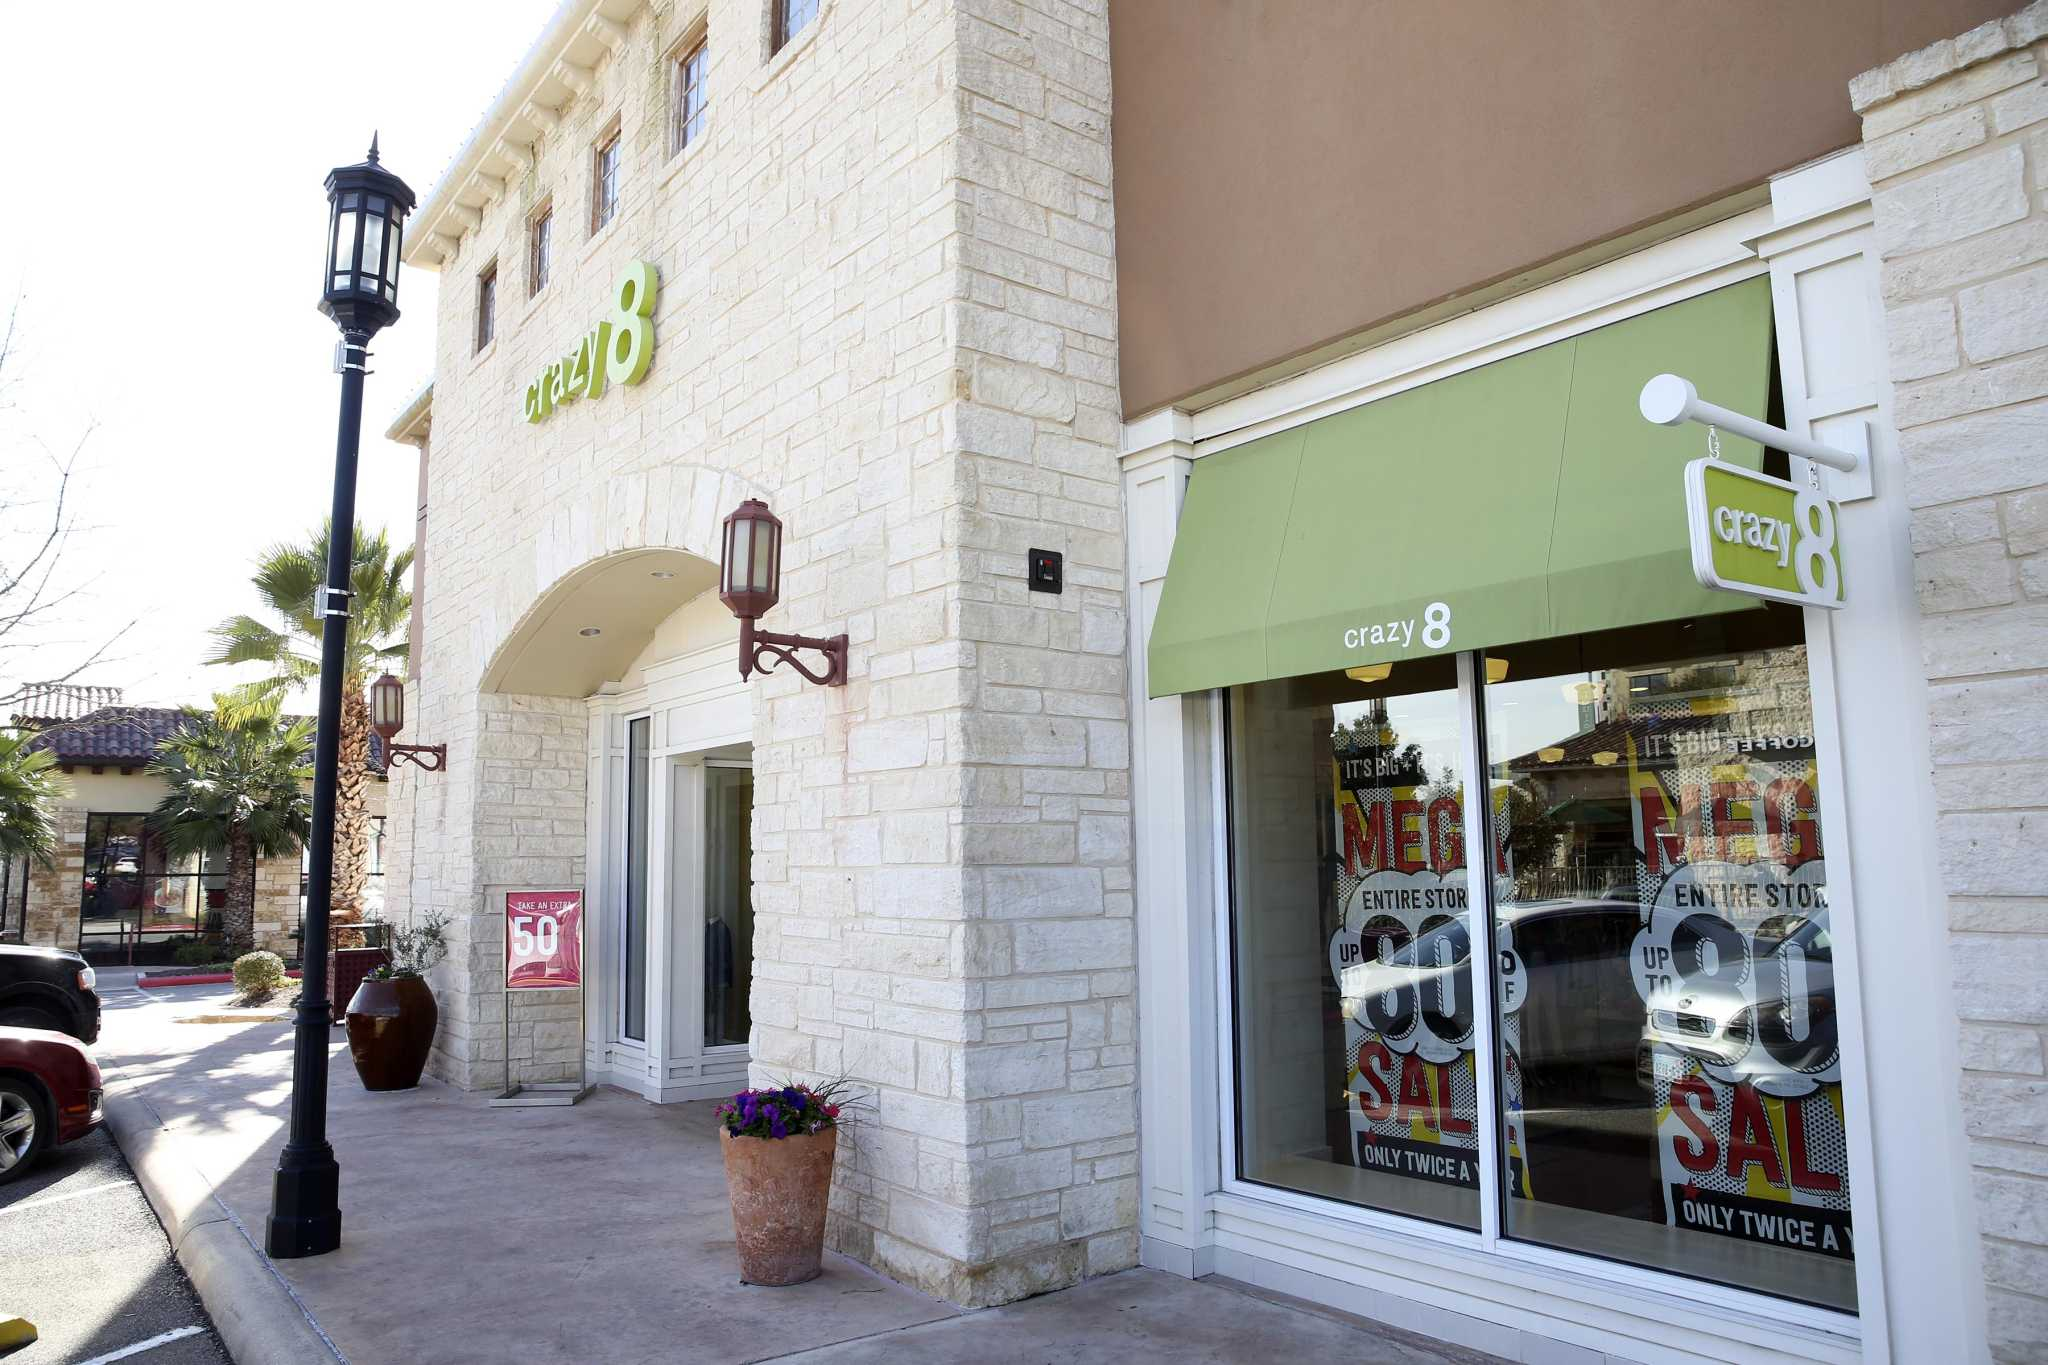 Retail roundup: Gymboree stores closing, Alamo Drafthouse upgrades and more